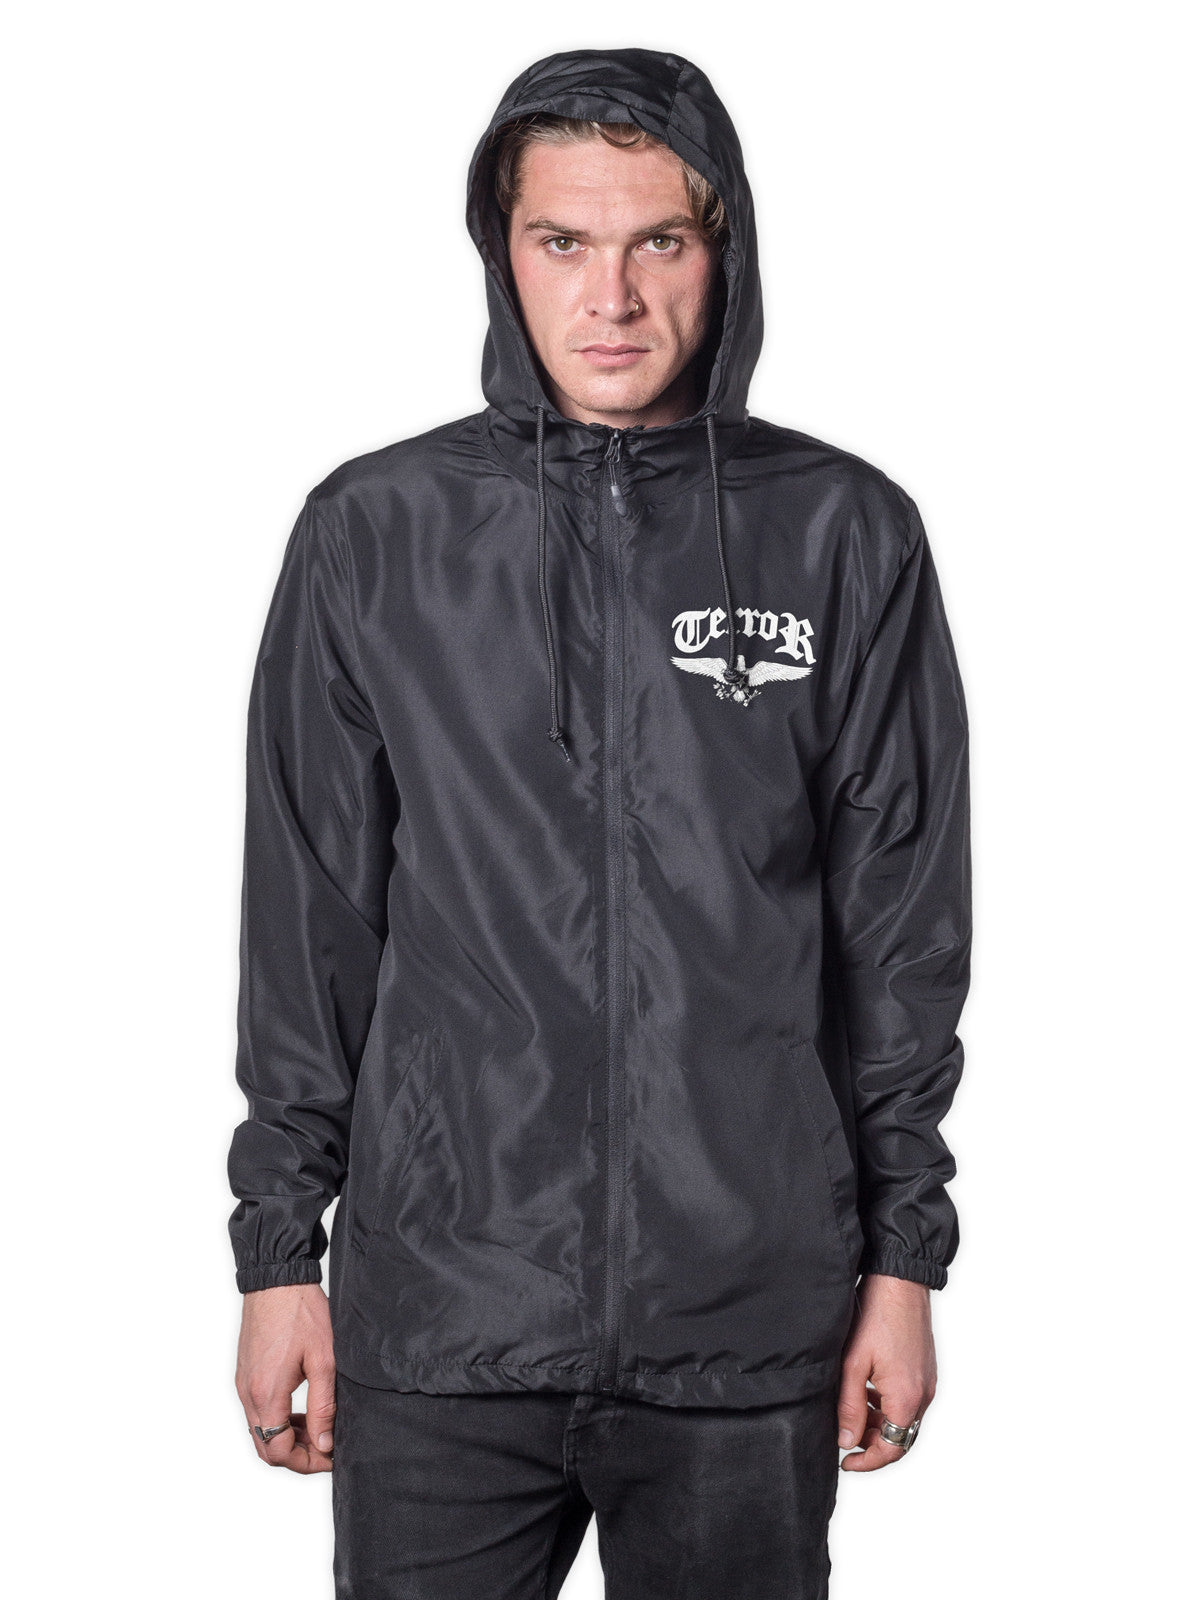 Terror - KOTF Zip-Up Windbreaker - Merch Limited